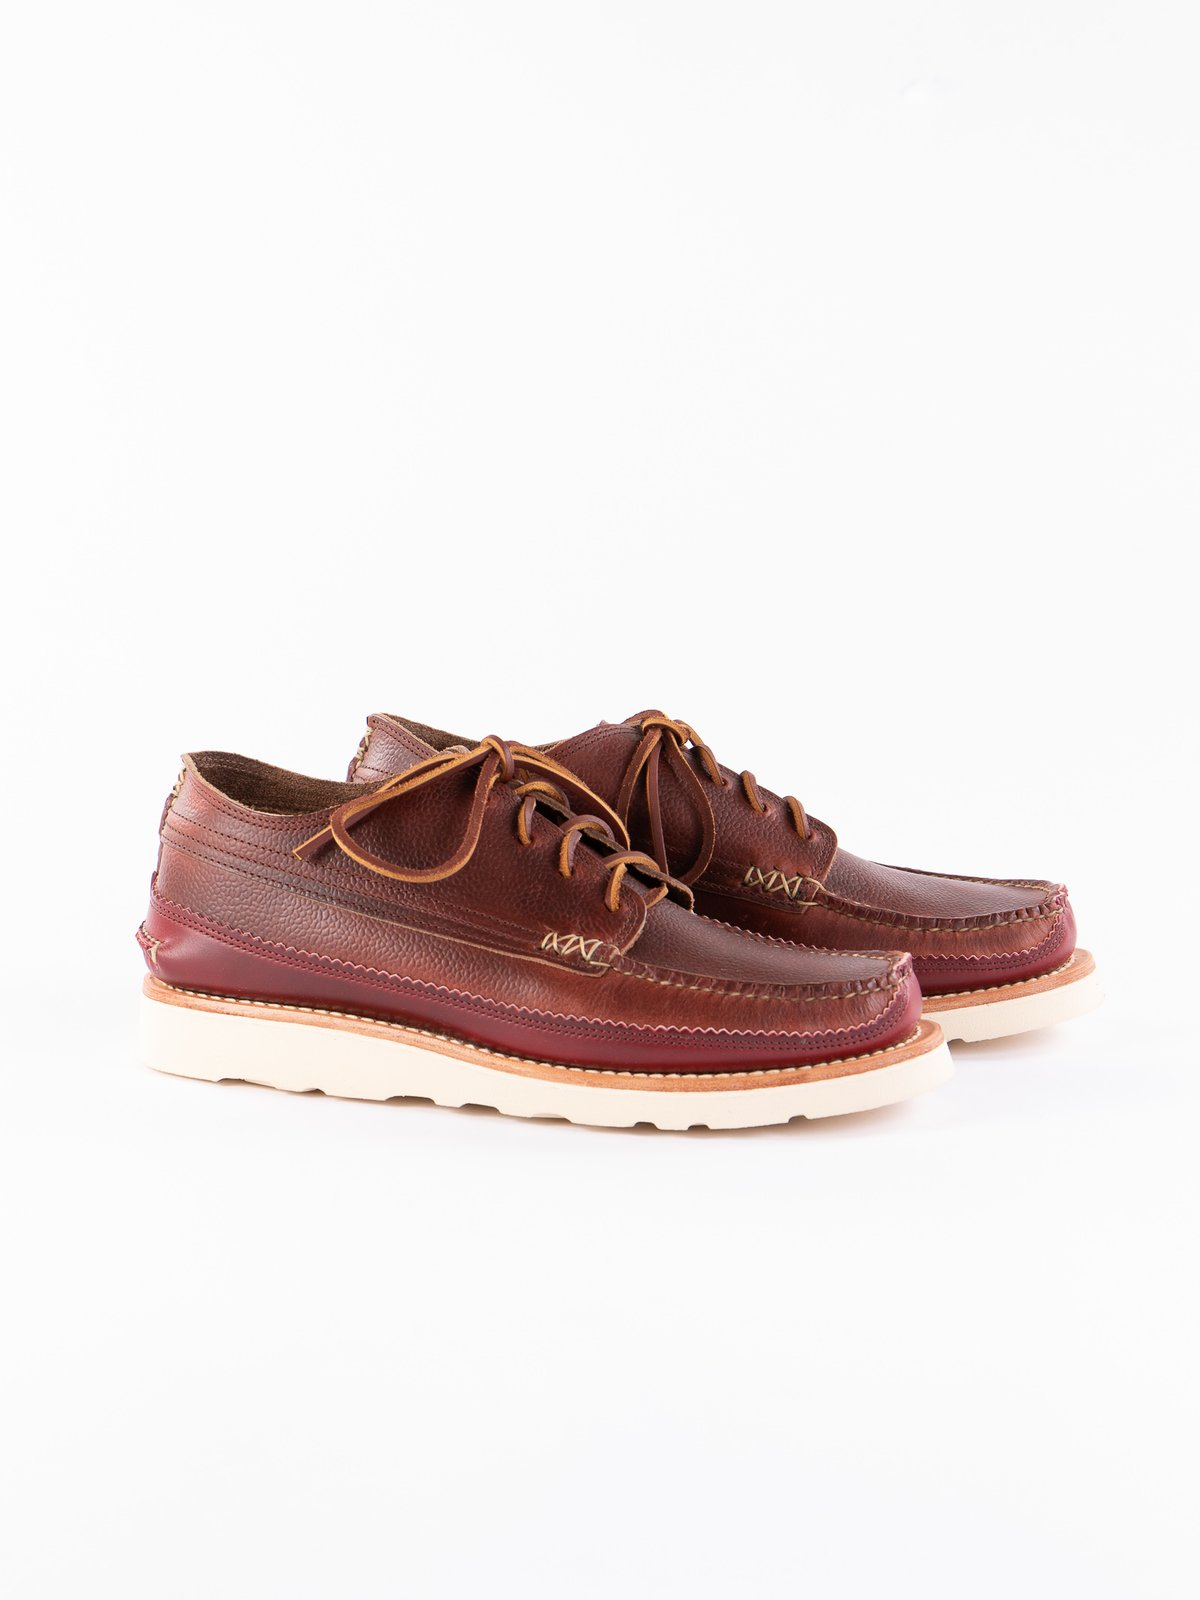 SG Tan x C Red Maine Guide Ox Exclusive - Image 1